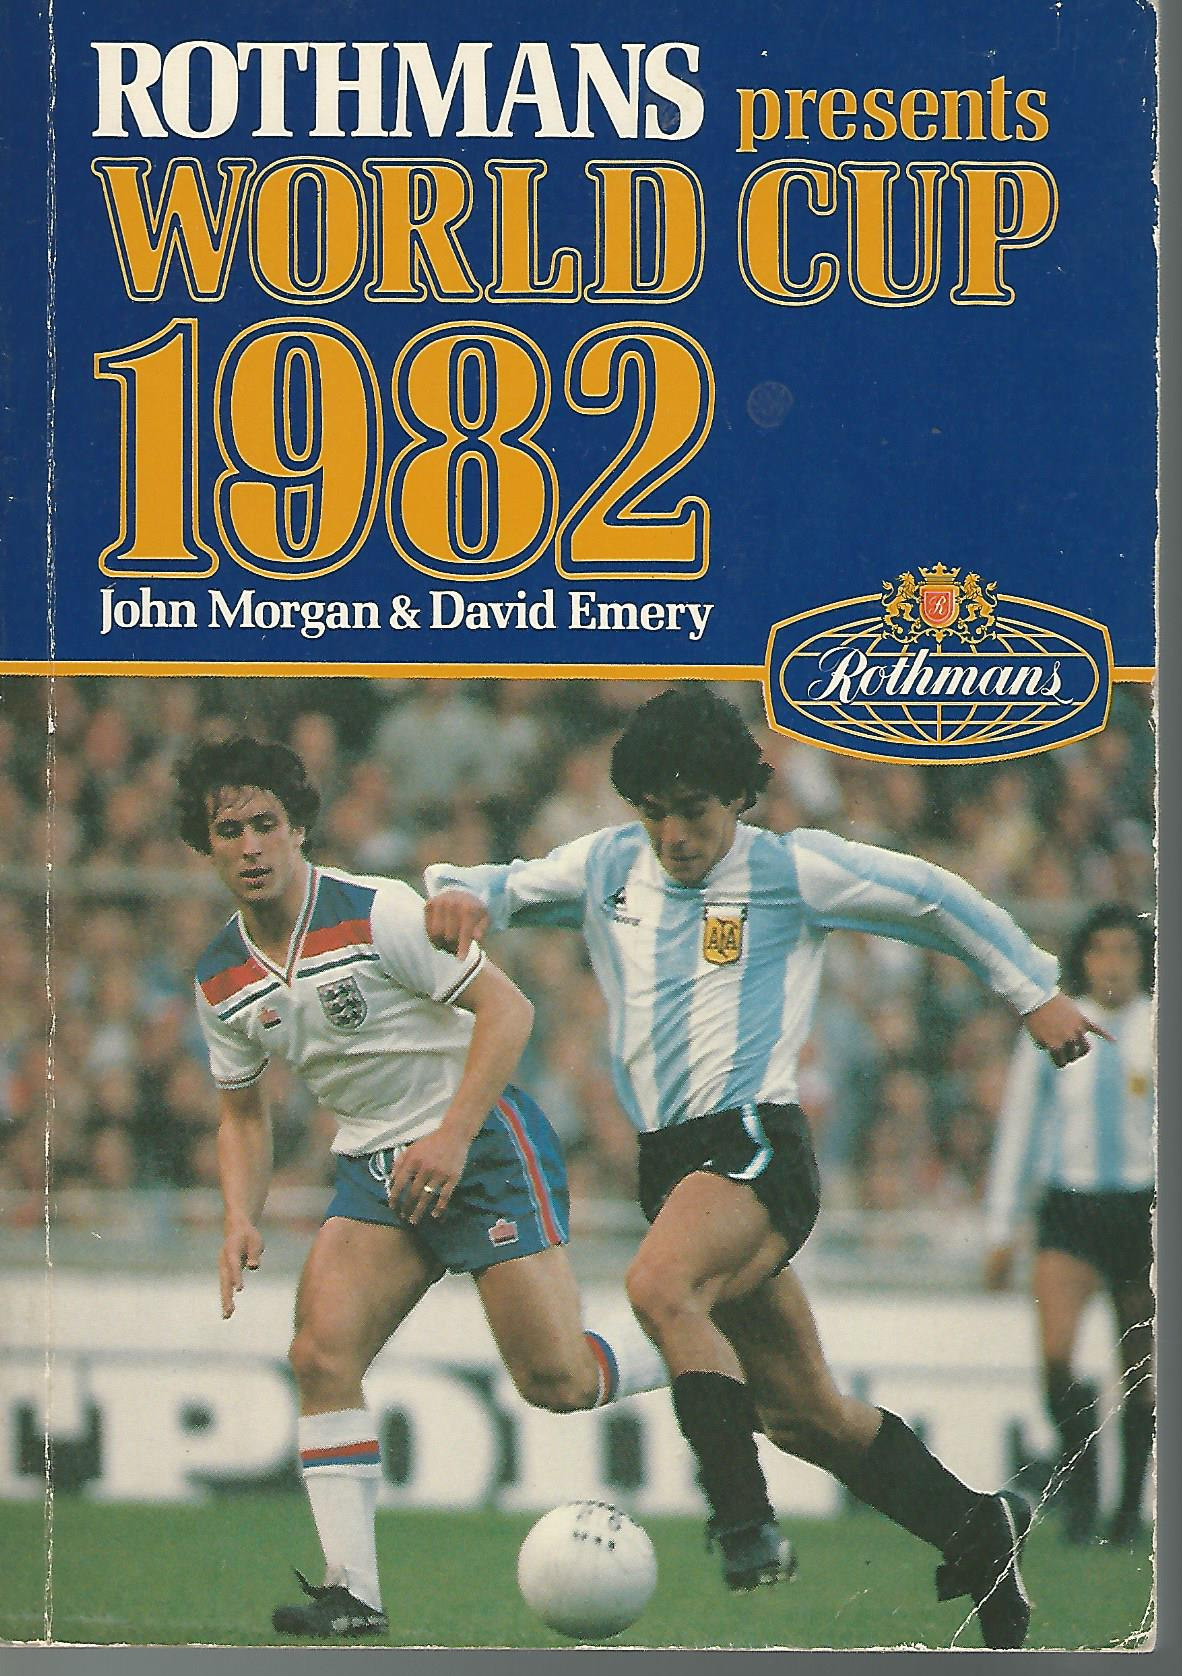 World cup odyssey 2016 manual